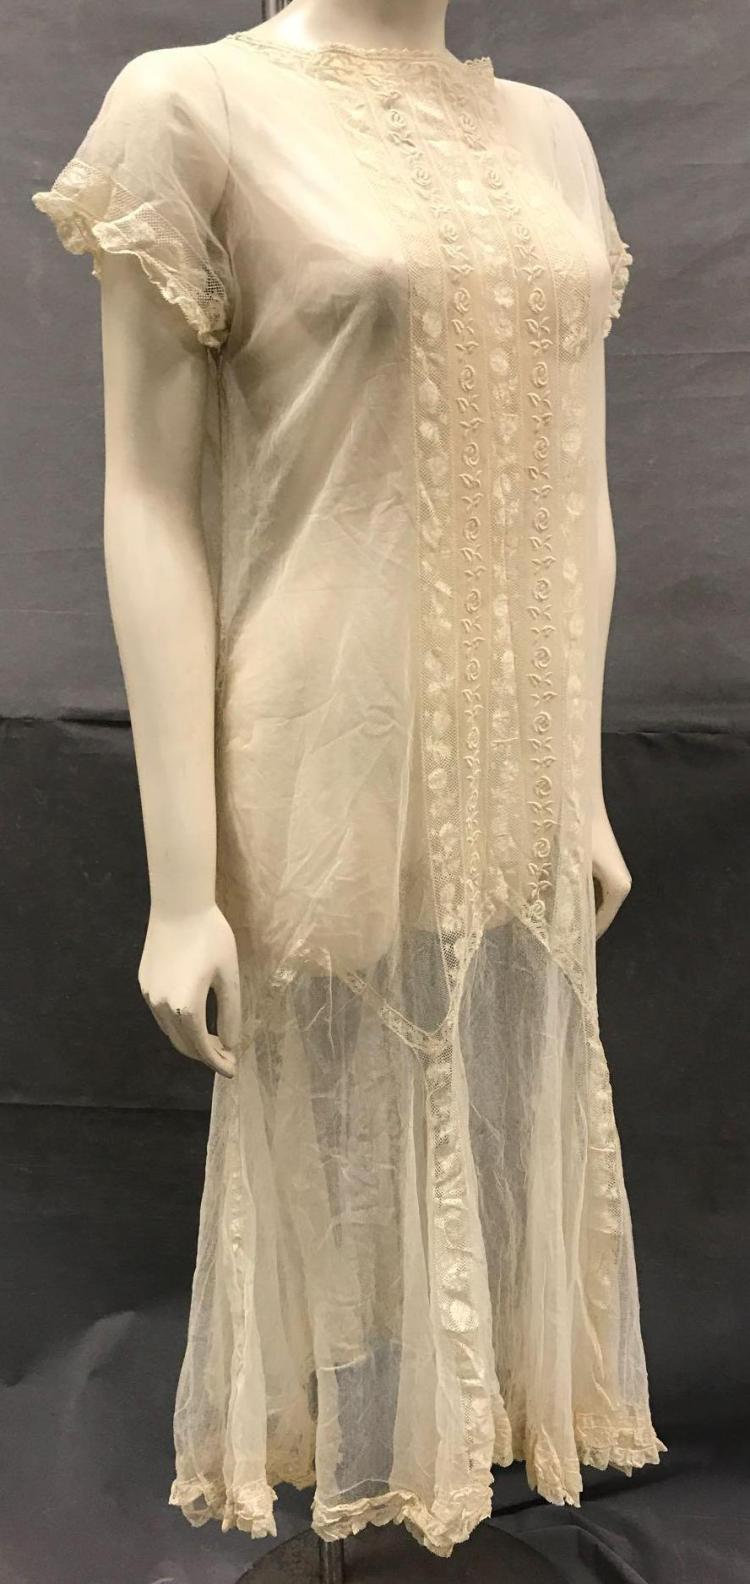 Art Deco era hand stitched lace dress